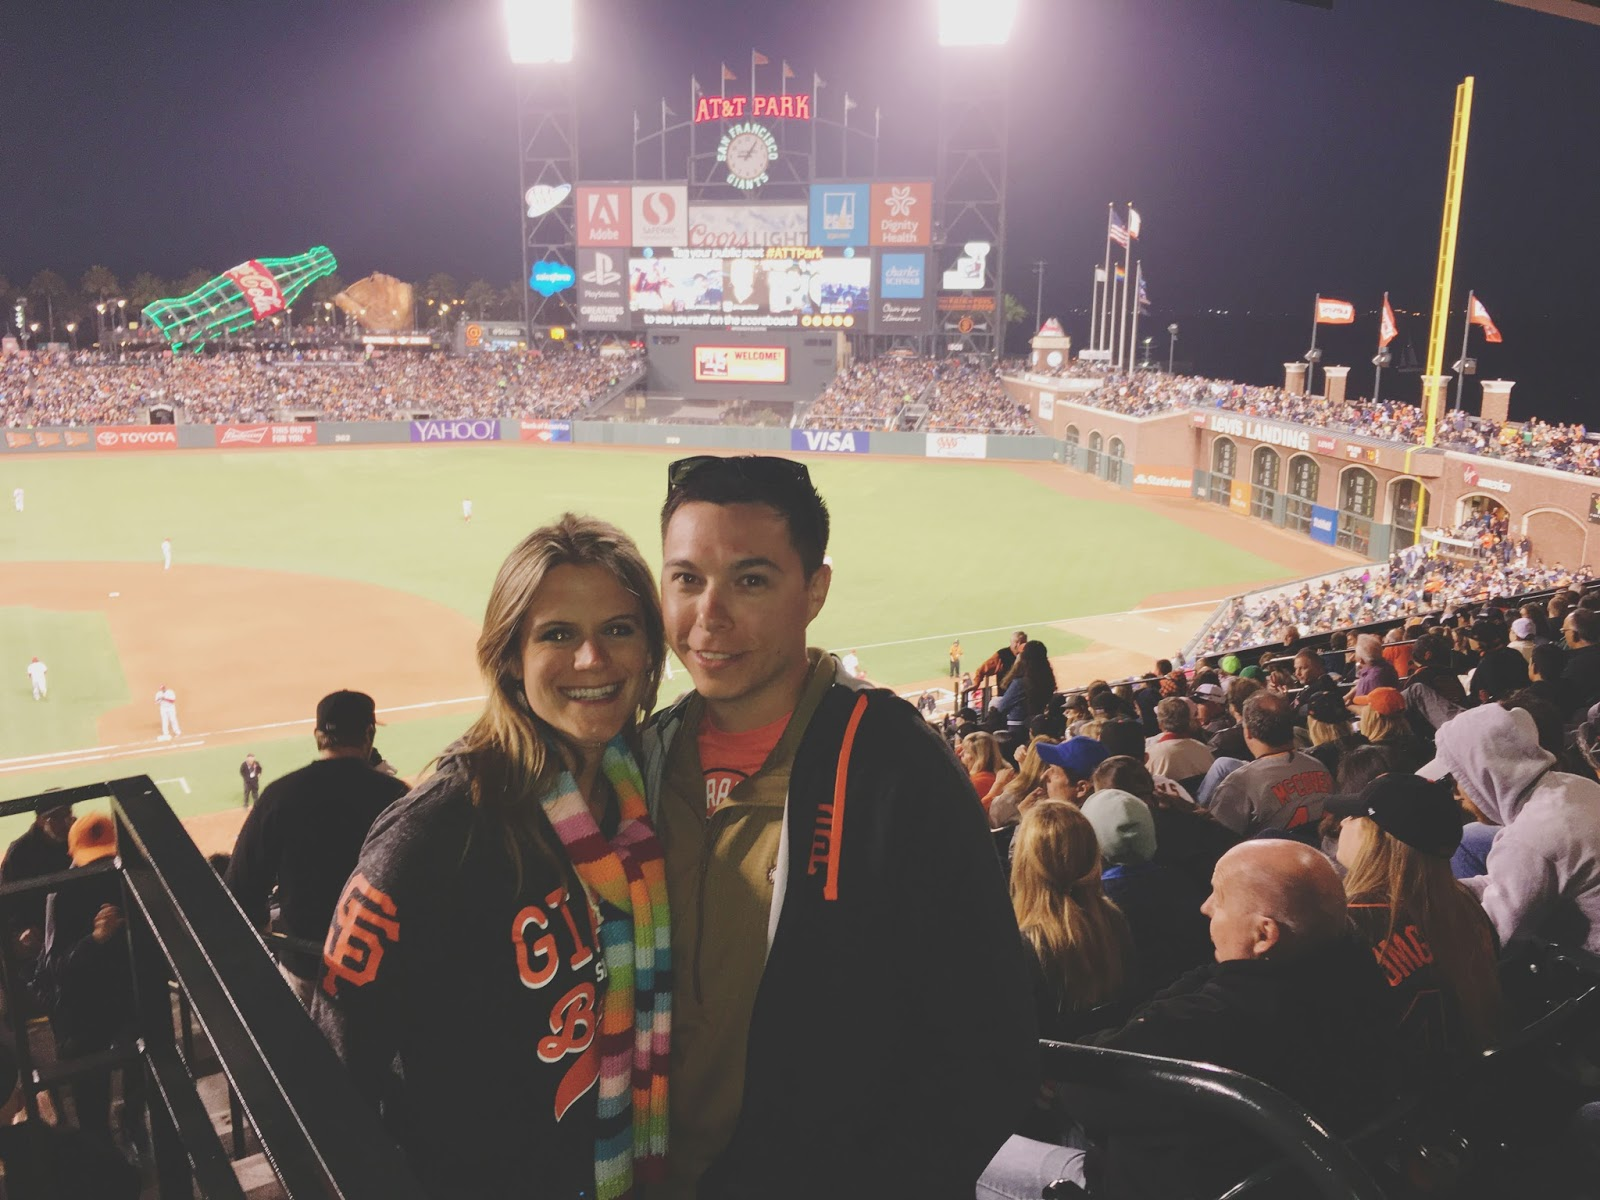 AT&T Park - the baseball stadium in San Francisco, California